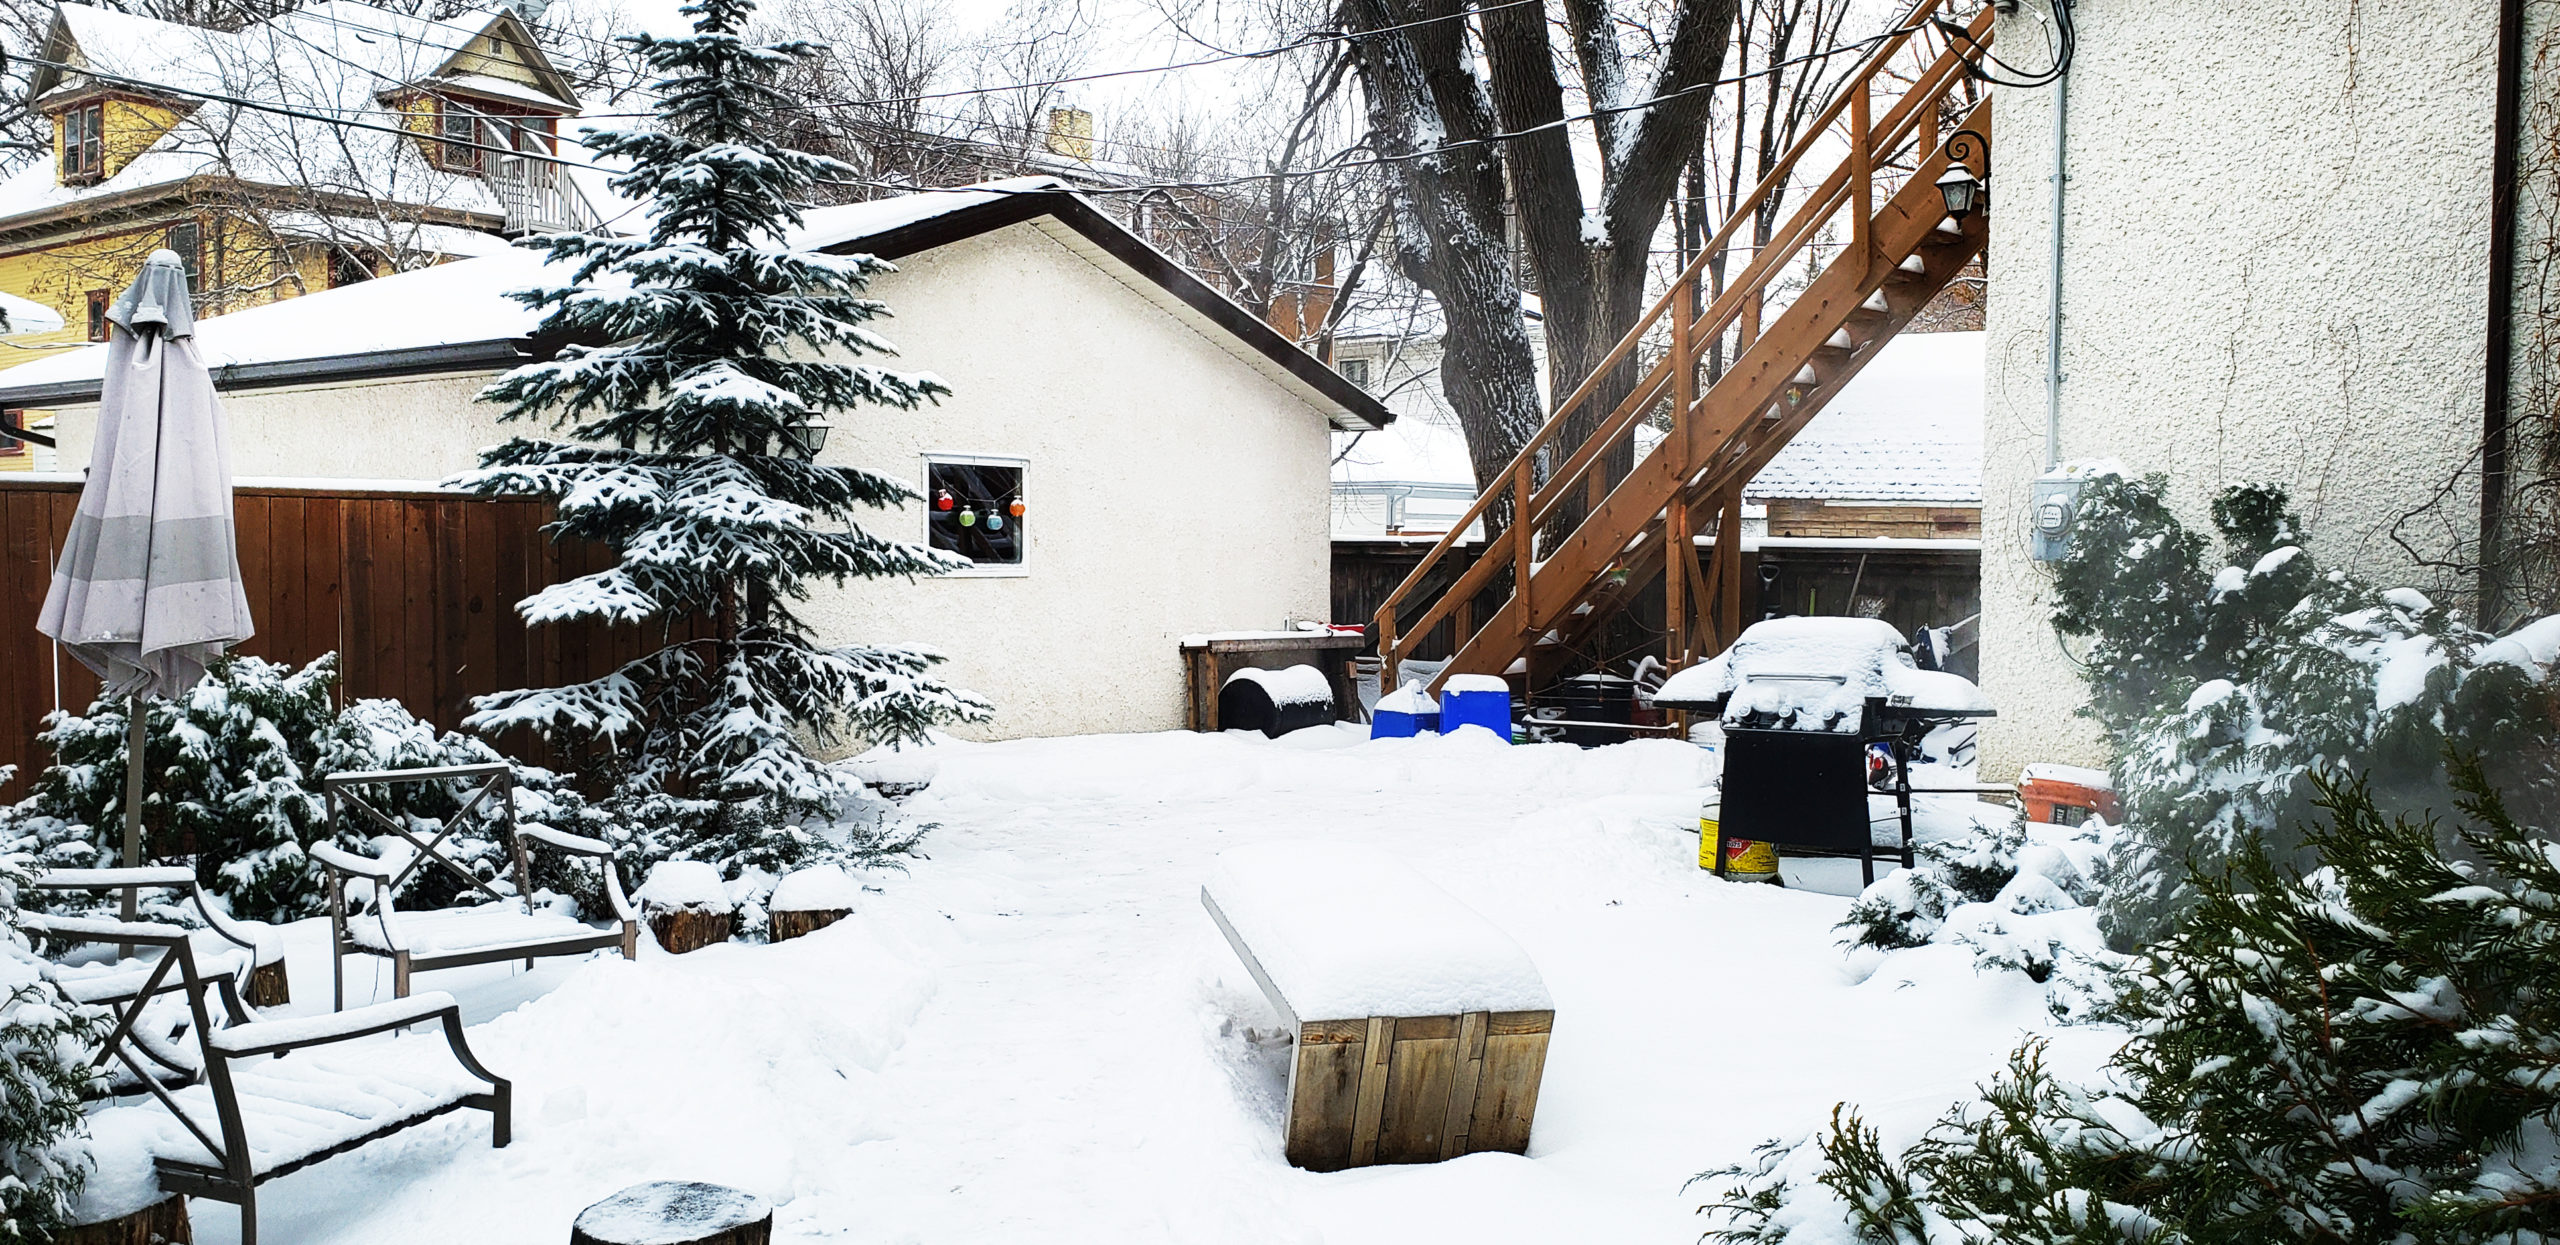 Backyard of 604 Stradbrook, showing the entrance to the upper unit.